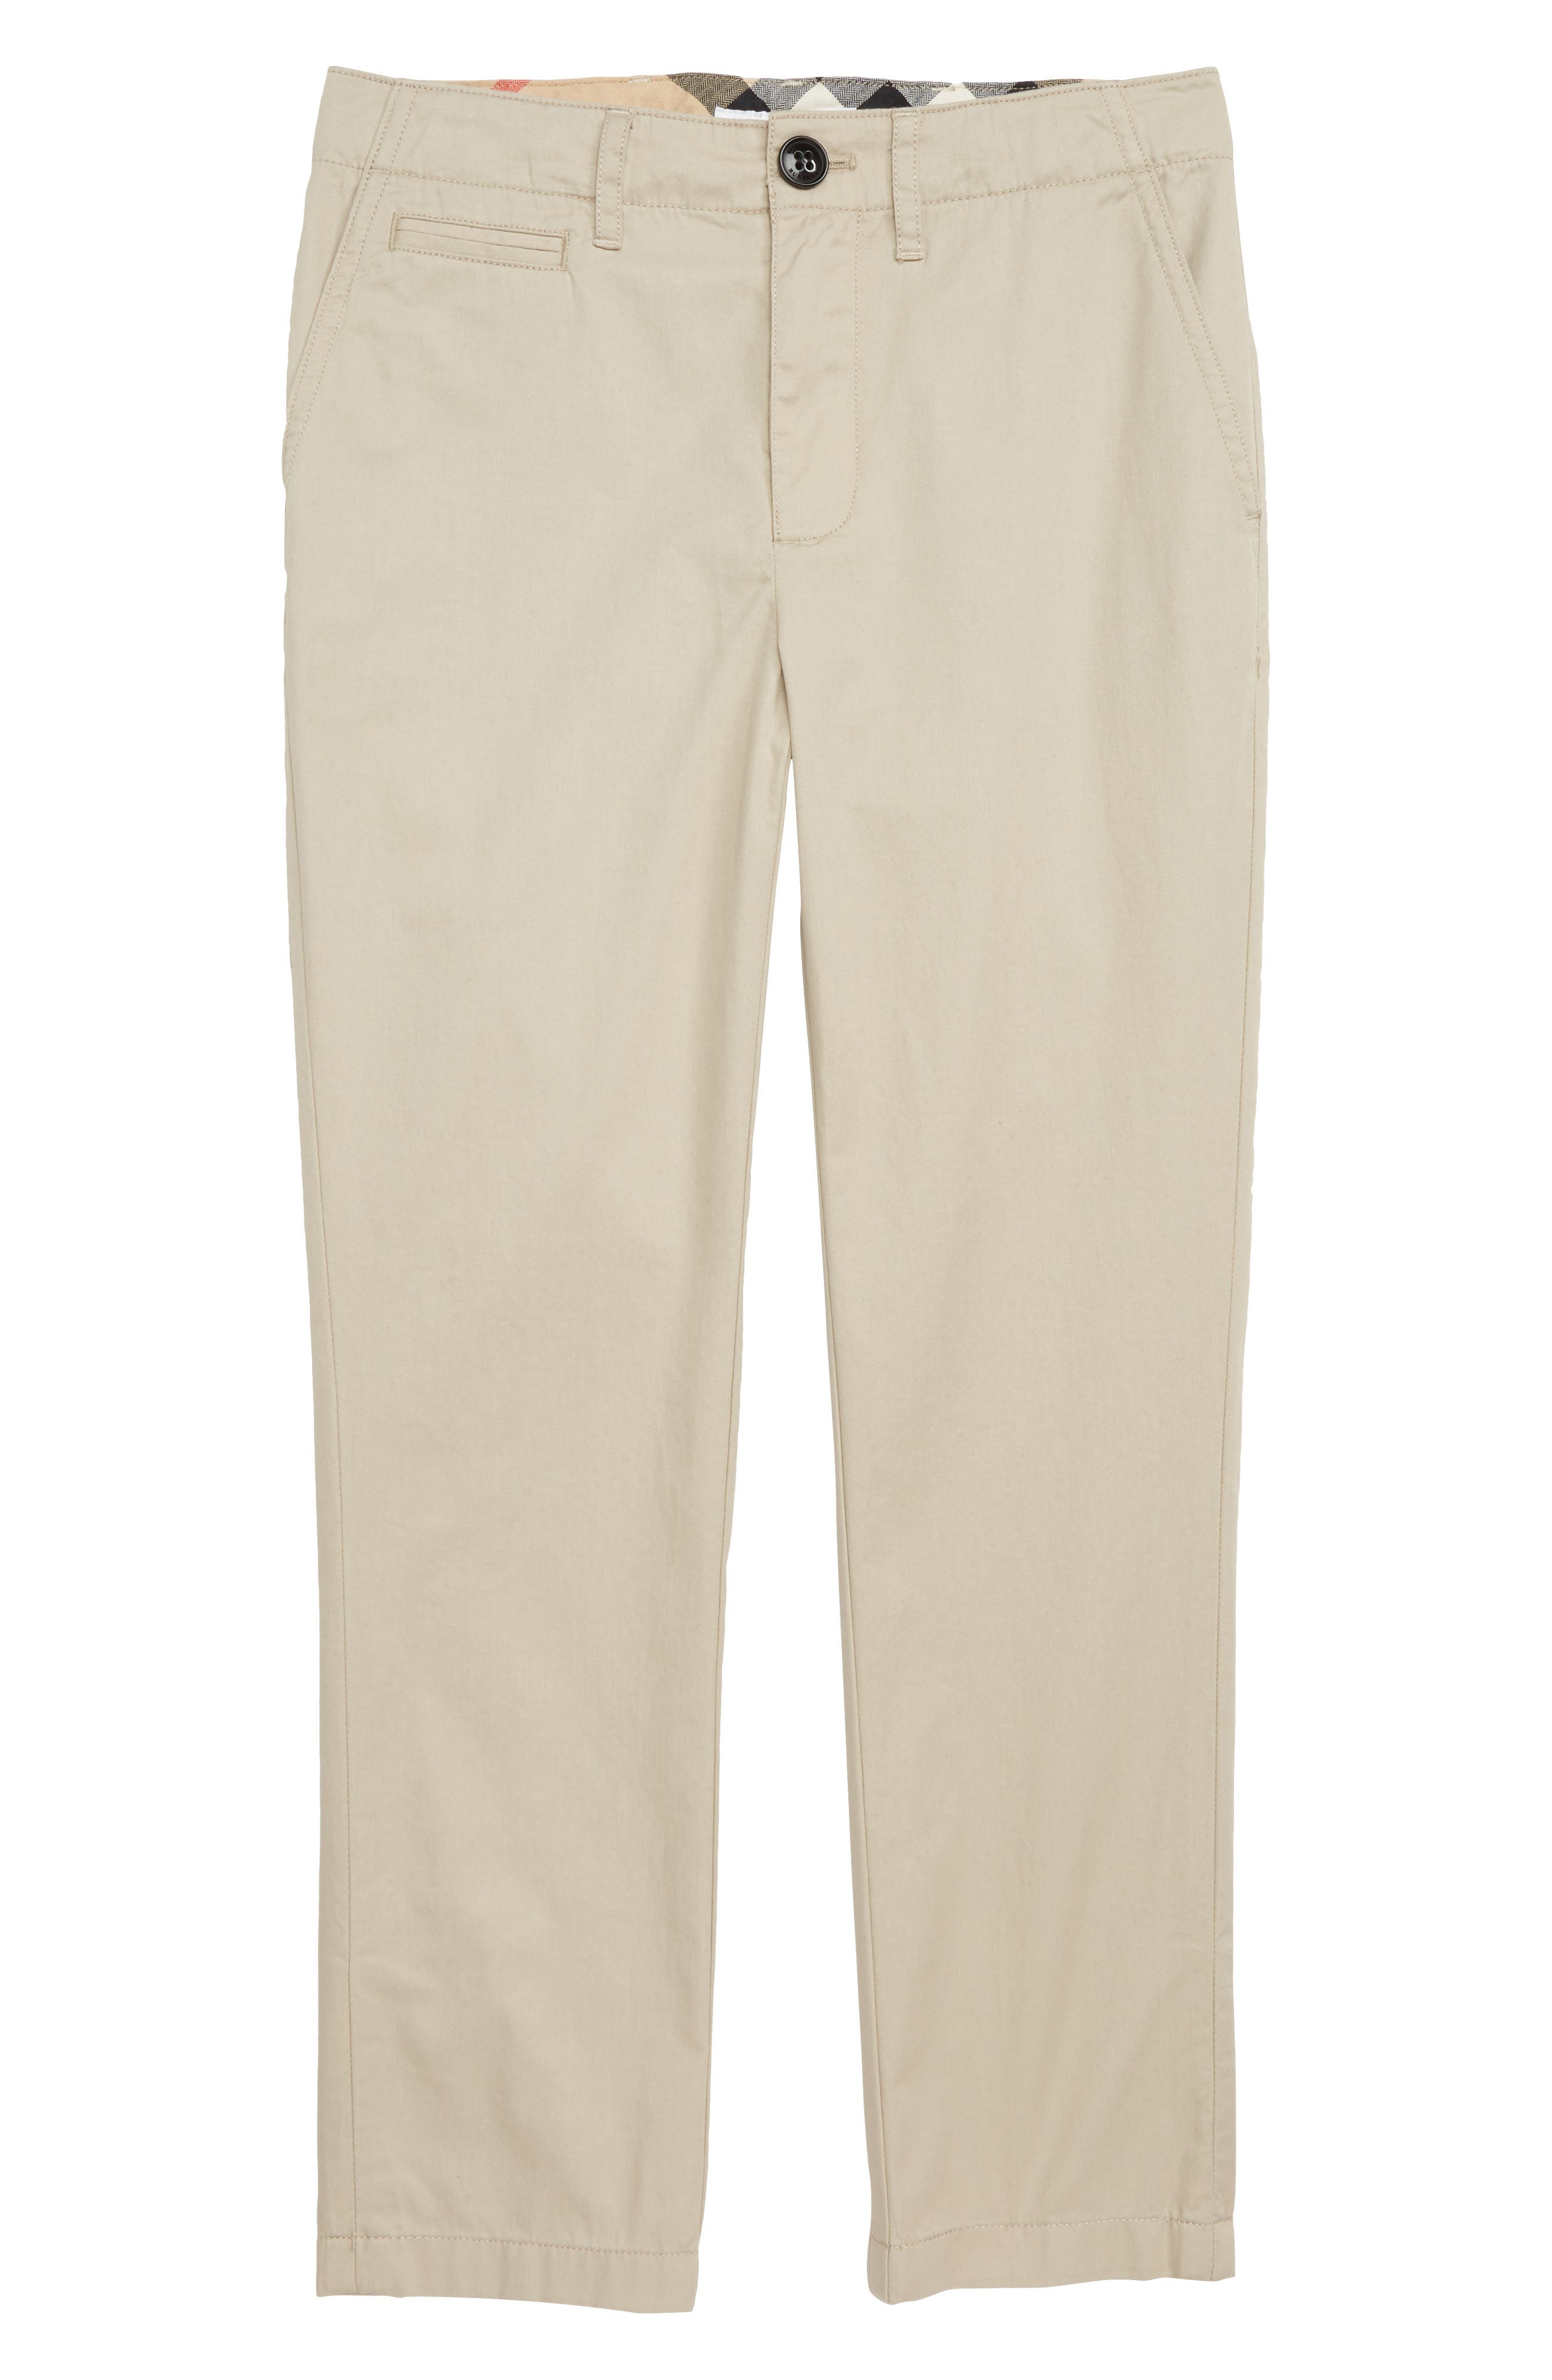 BURBERRY, Kids Teo Trousers, Main thumbnail 1, color, 028